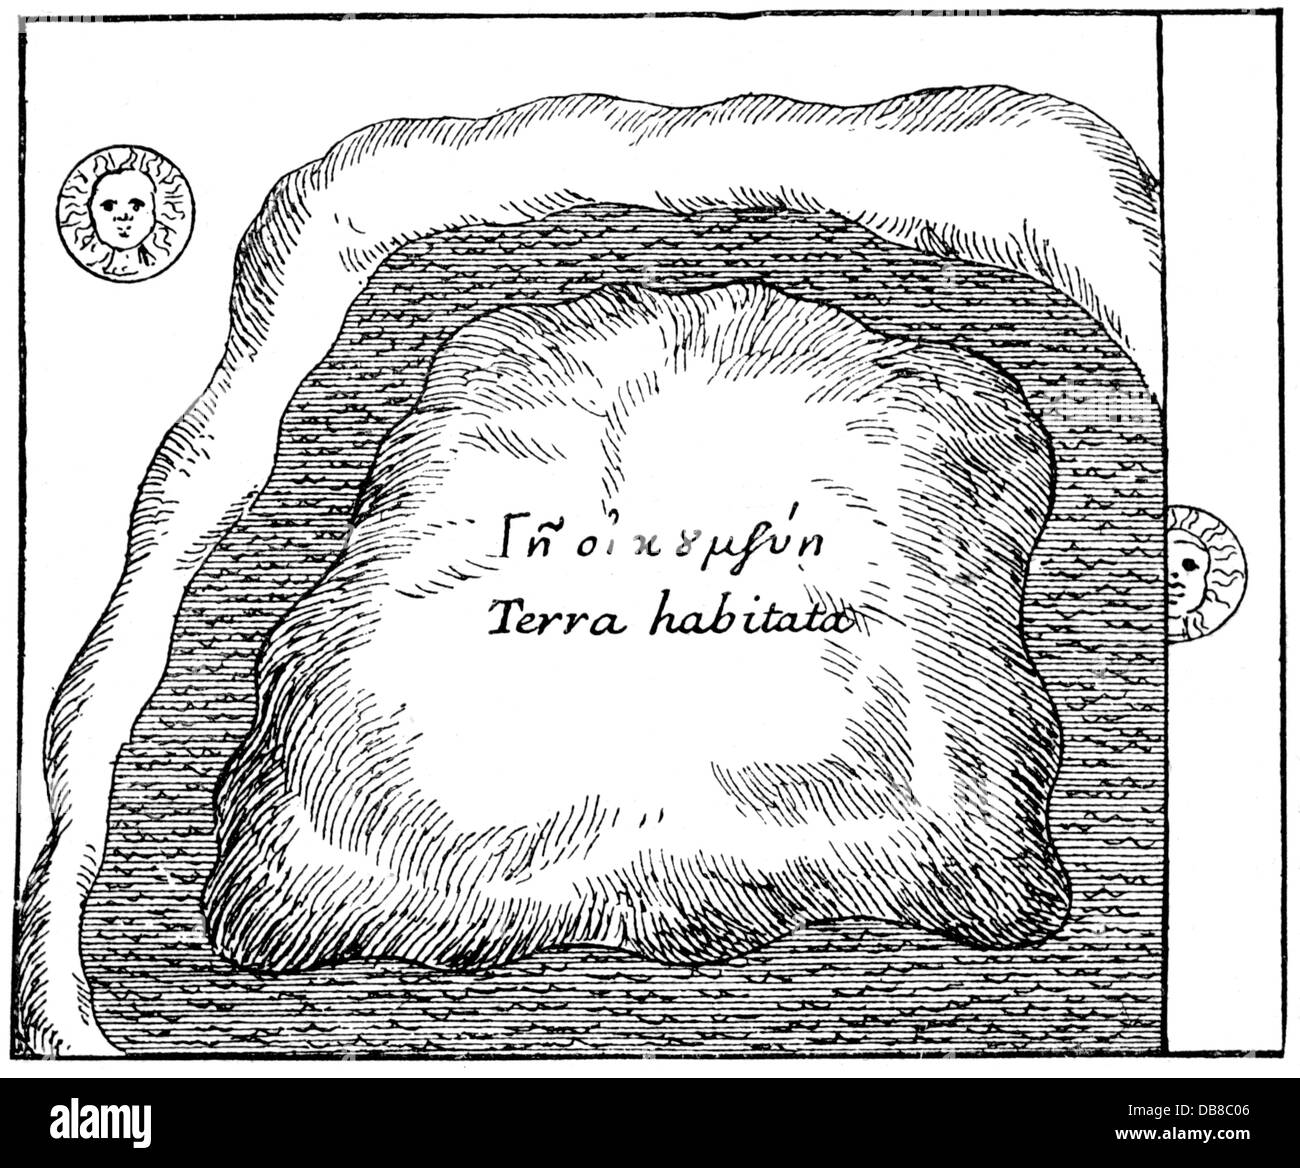 astronomy, world view of the Cosmas Indicopleustes, ground plan of the mountain which the forms the world, 'Topographia - Stock Image